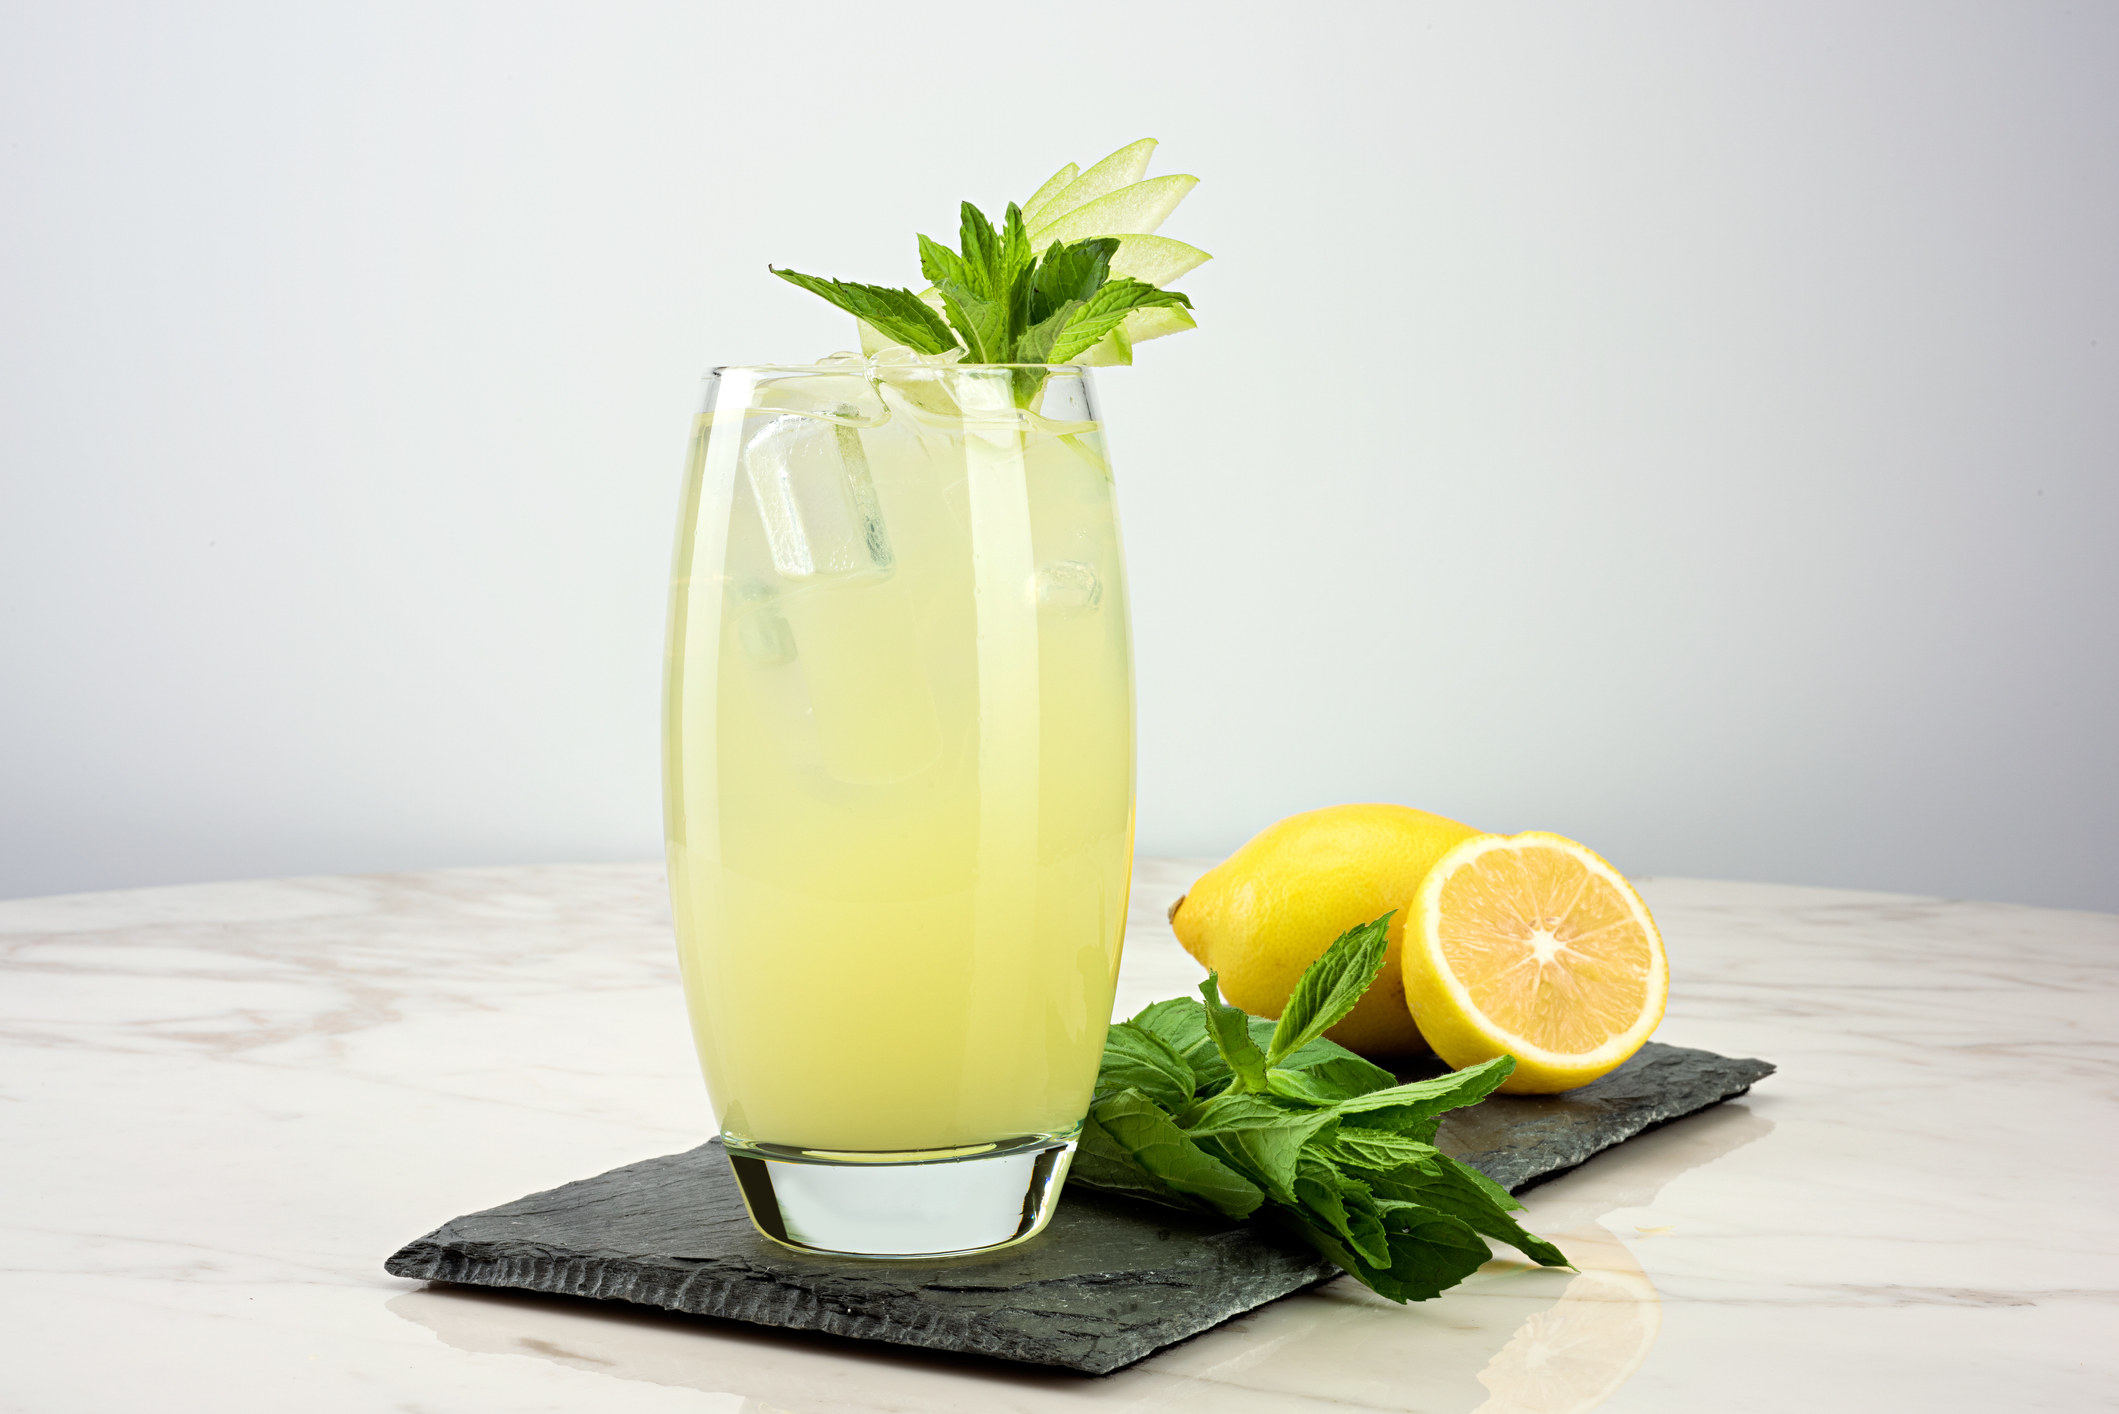 A glass of lemonade with mint.